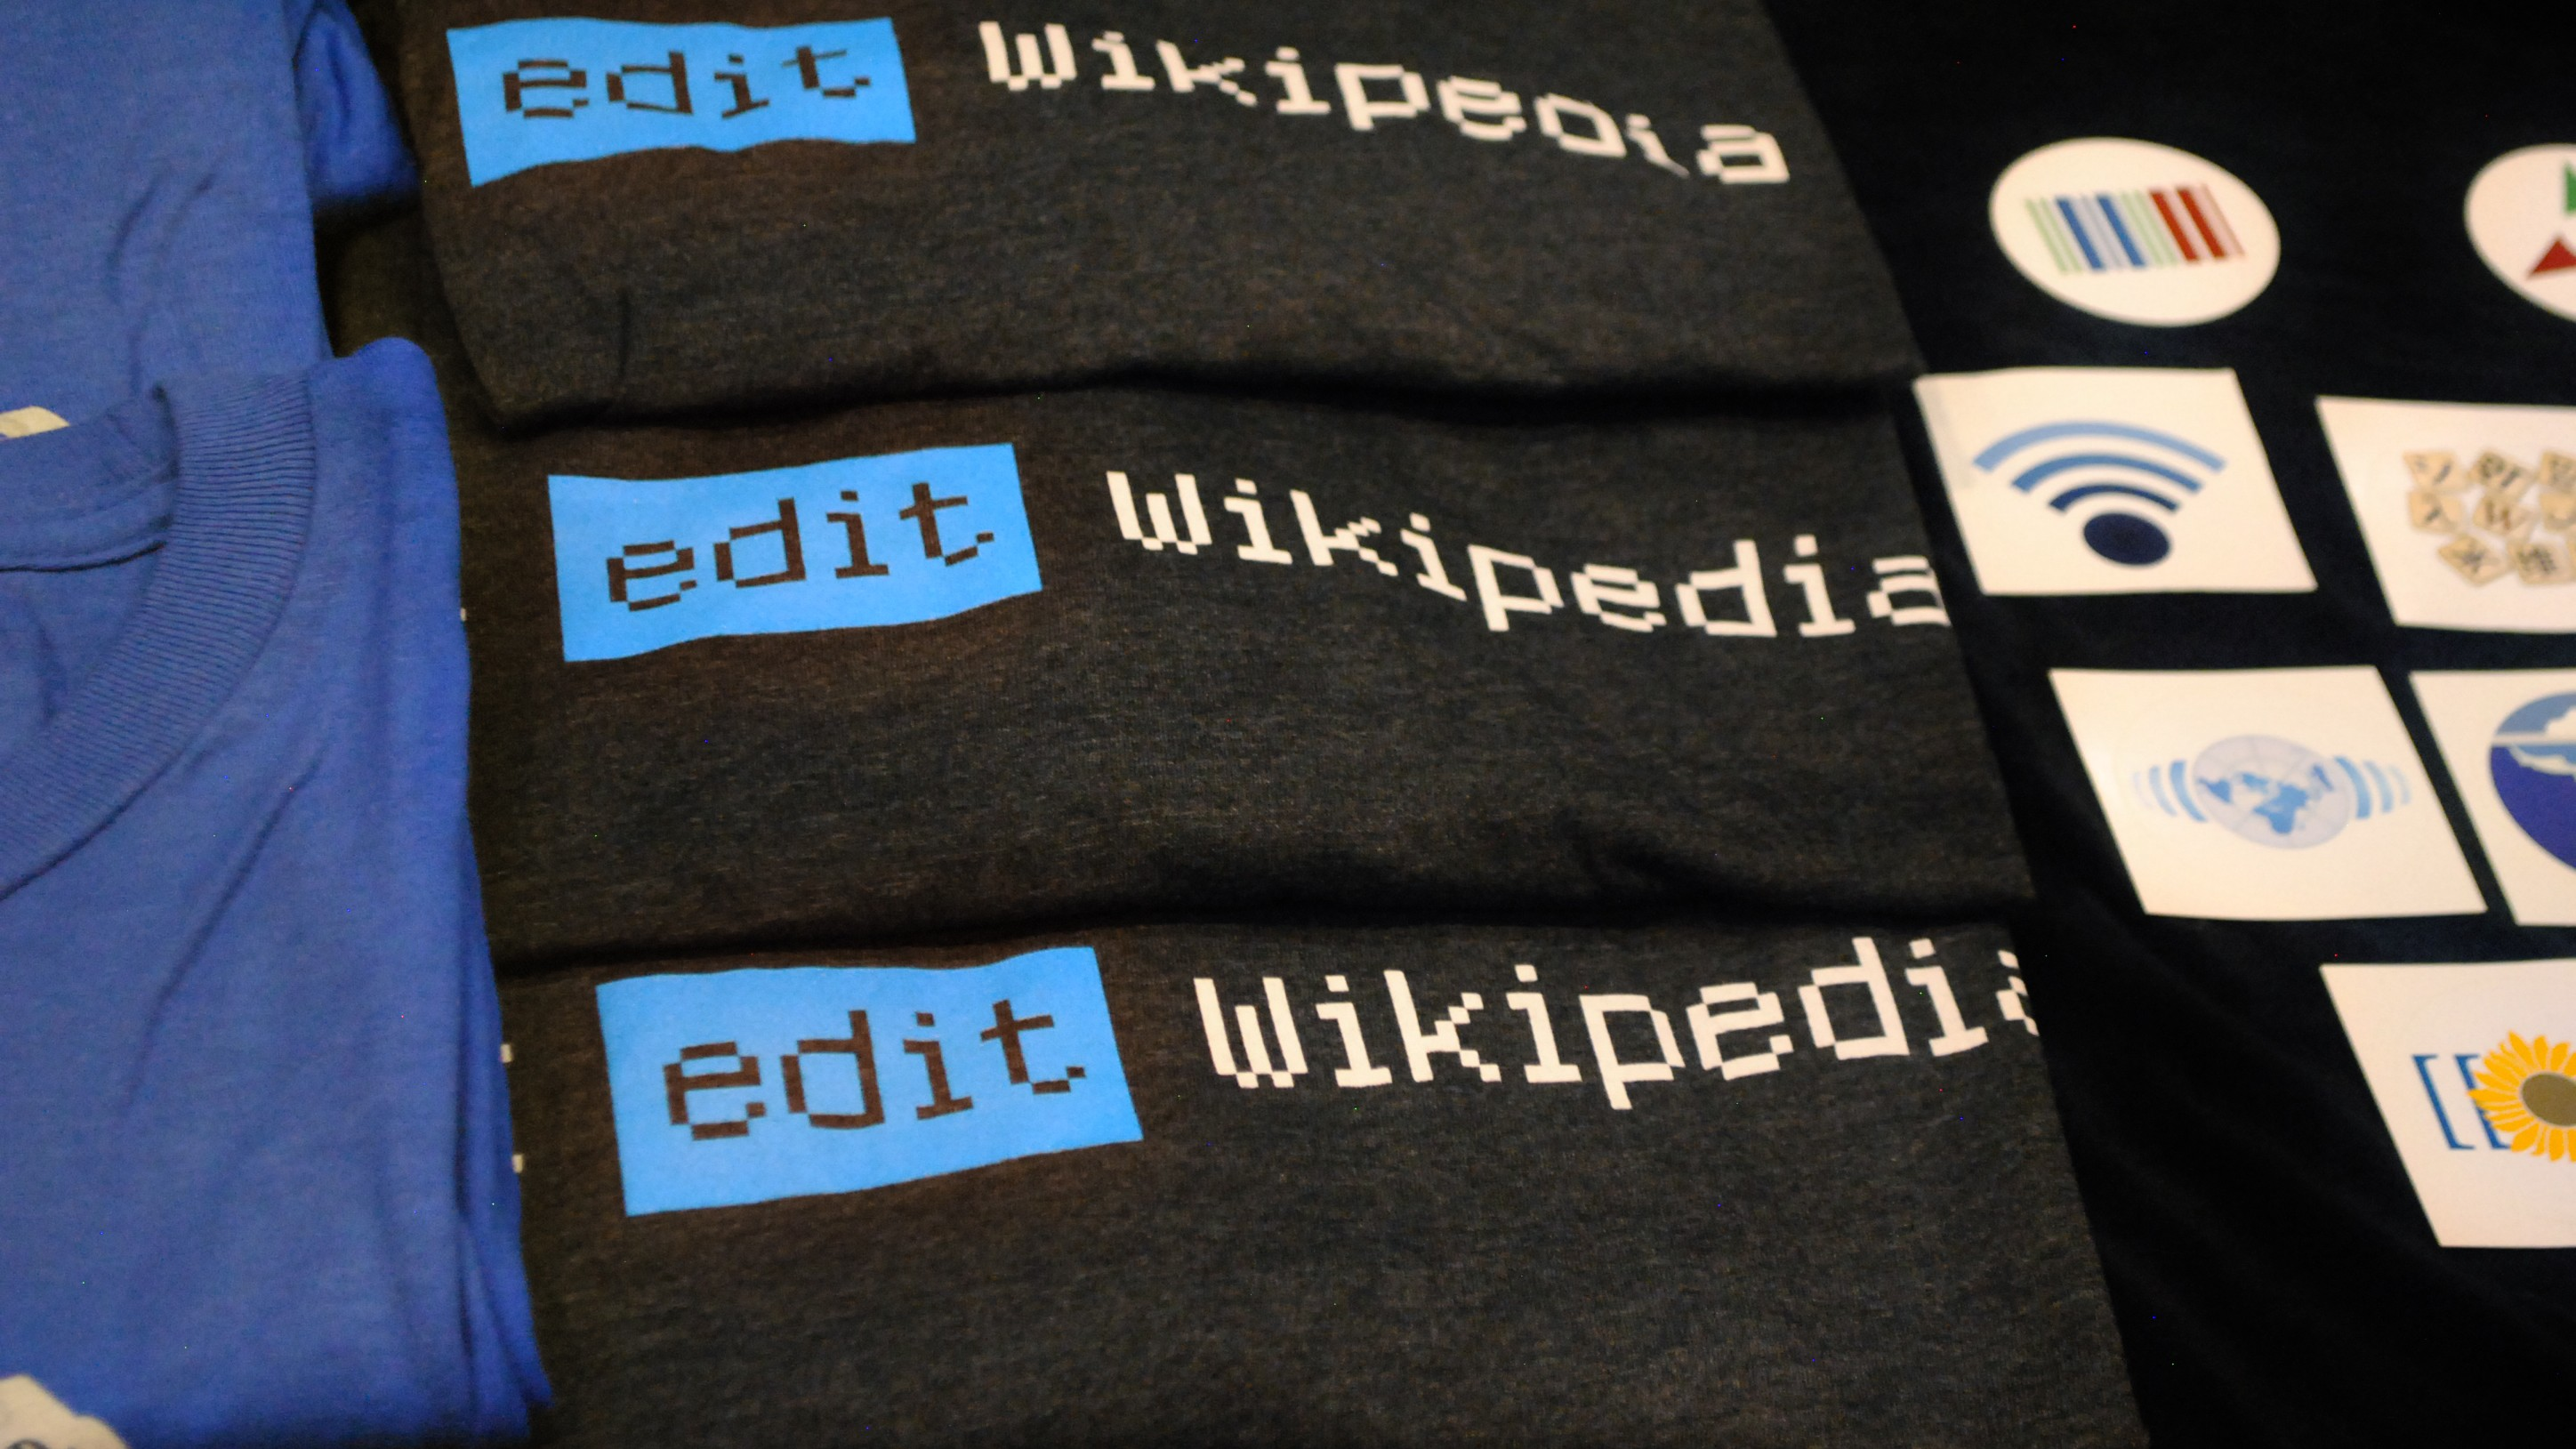 An Ethnographic Study of the Wikipedia Hive Mind